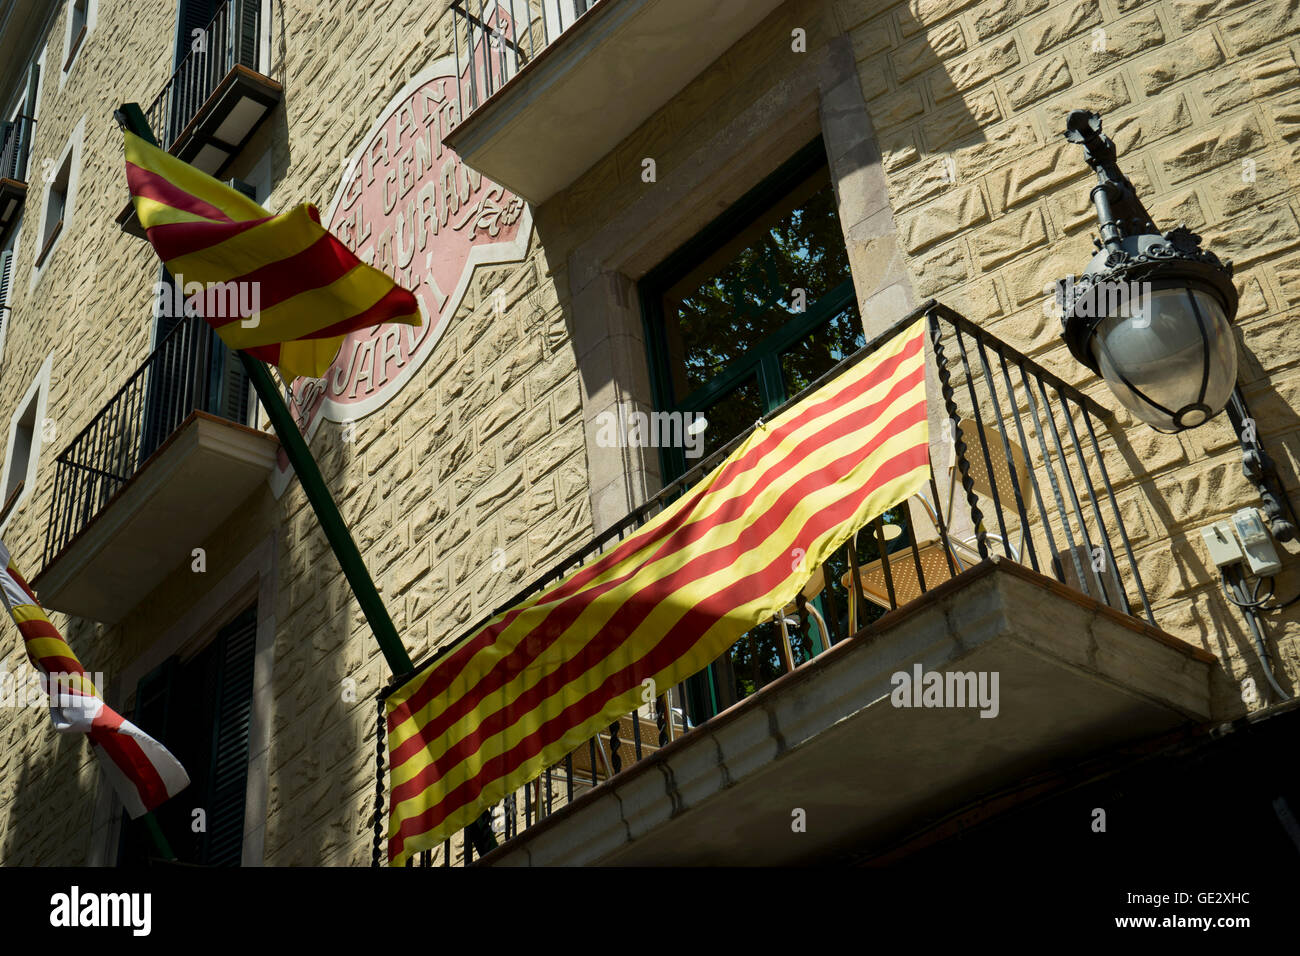 Catalonian flag in a balcony in the old Gothic quarter in Barcelona. Catalonia. Spain - Stock Image